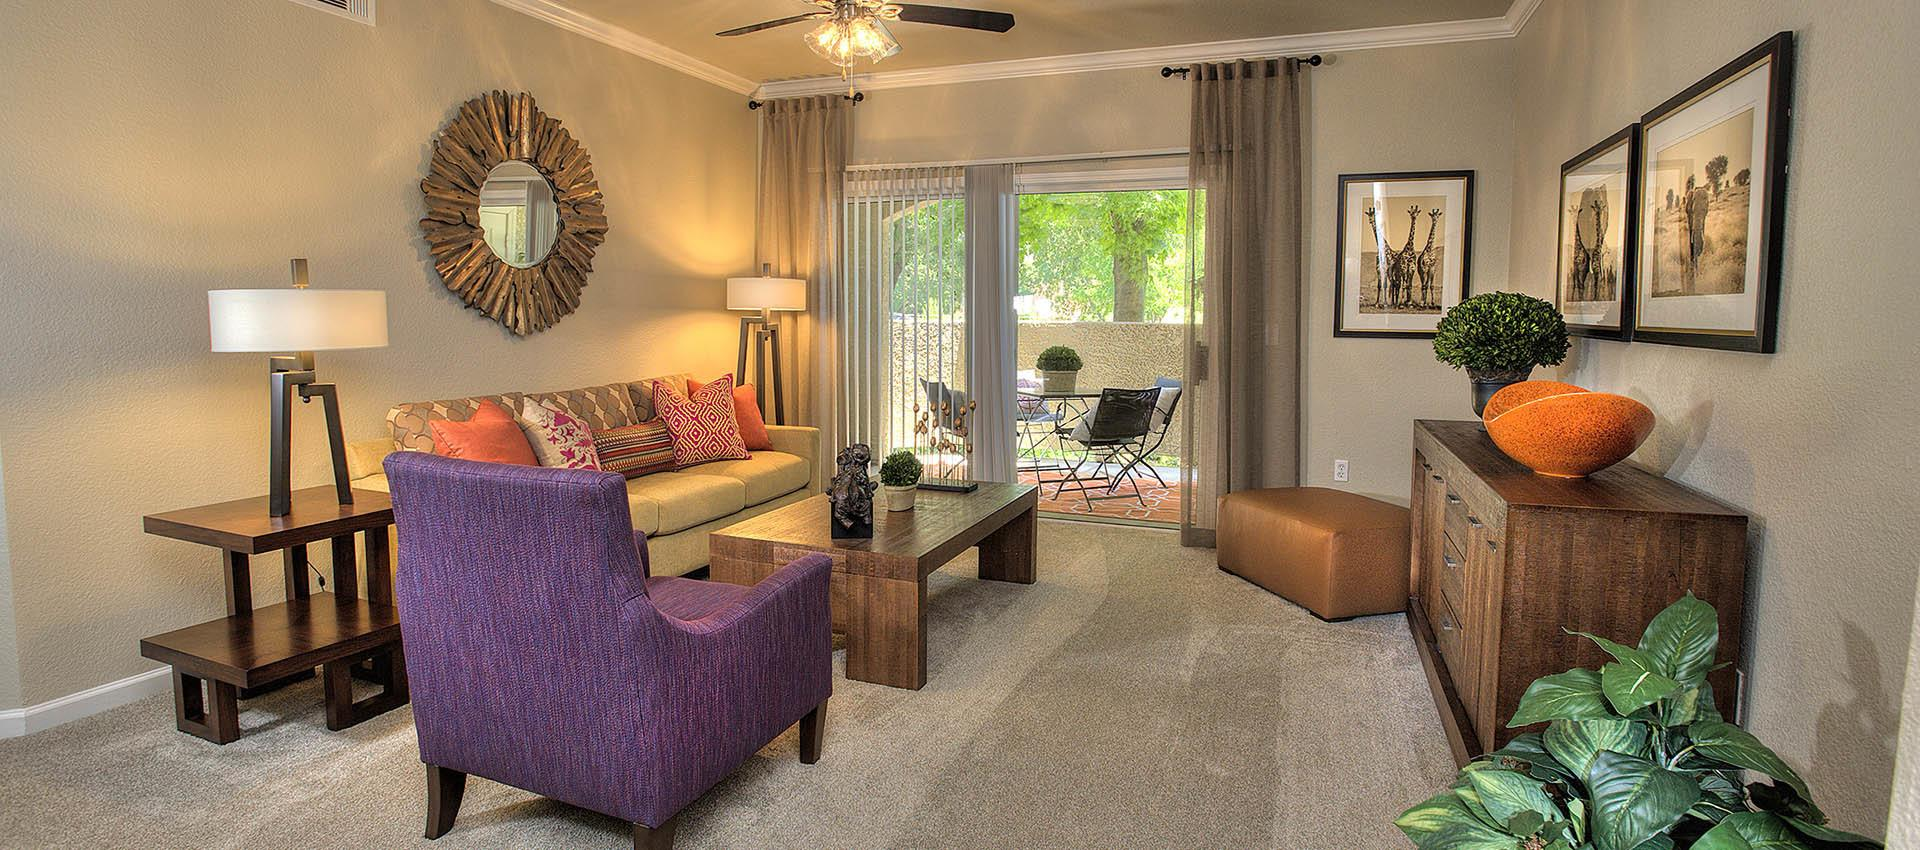 Living Room With Back Deck at River Oaks Apartment Homes in Vacaville